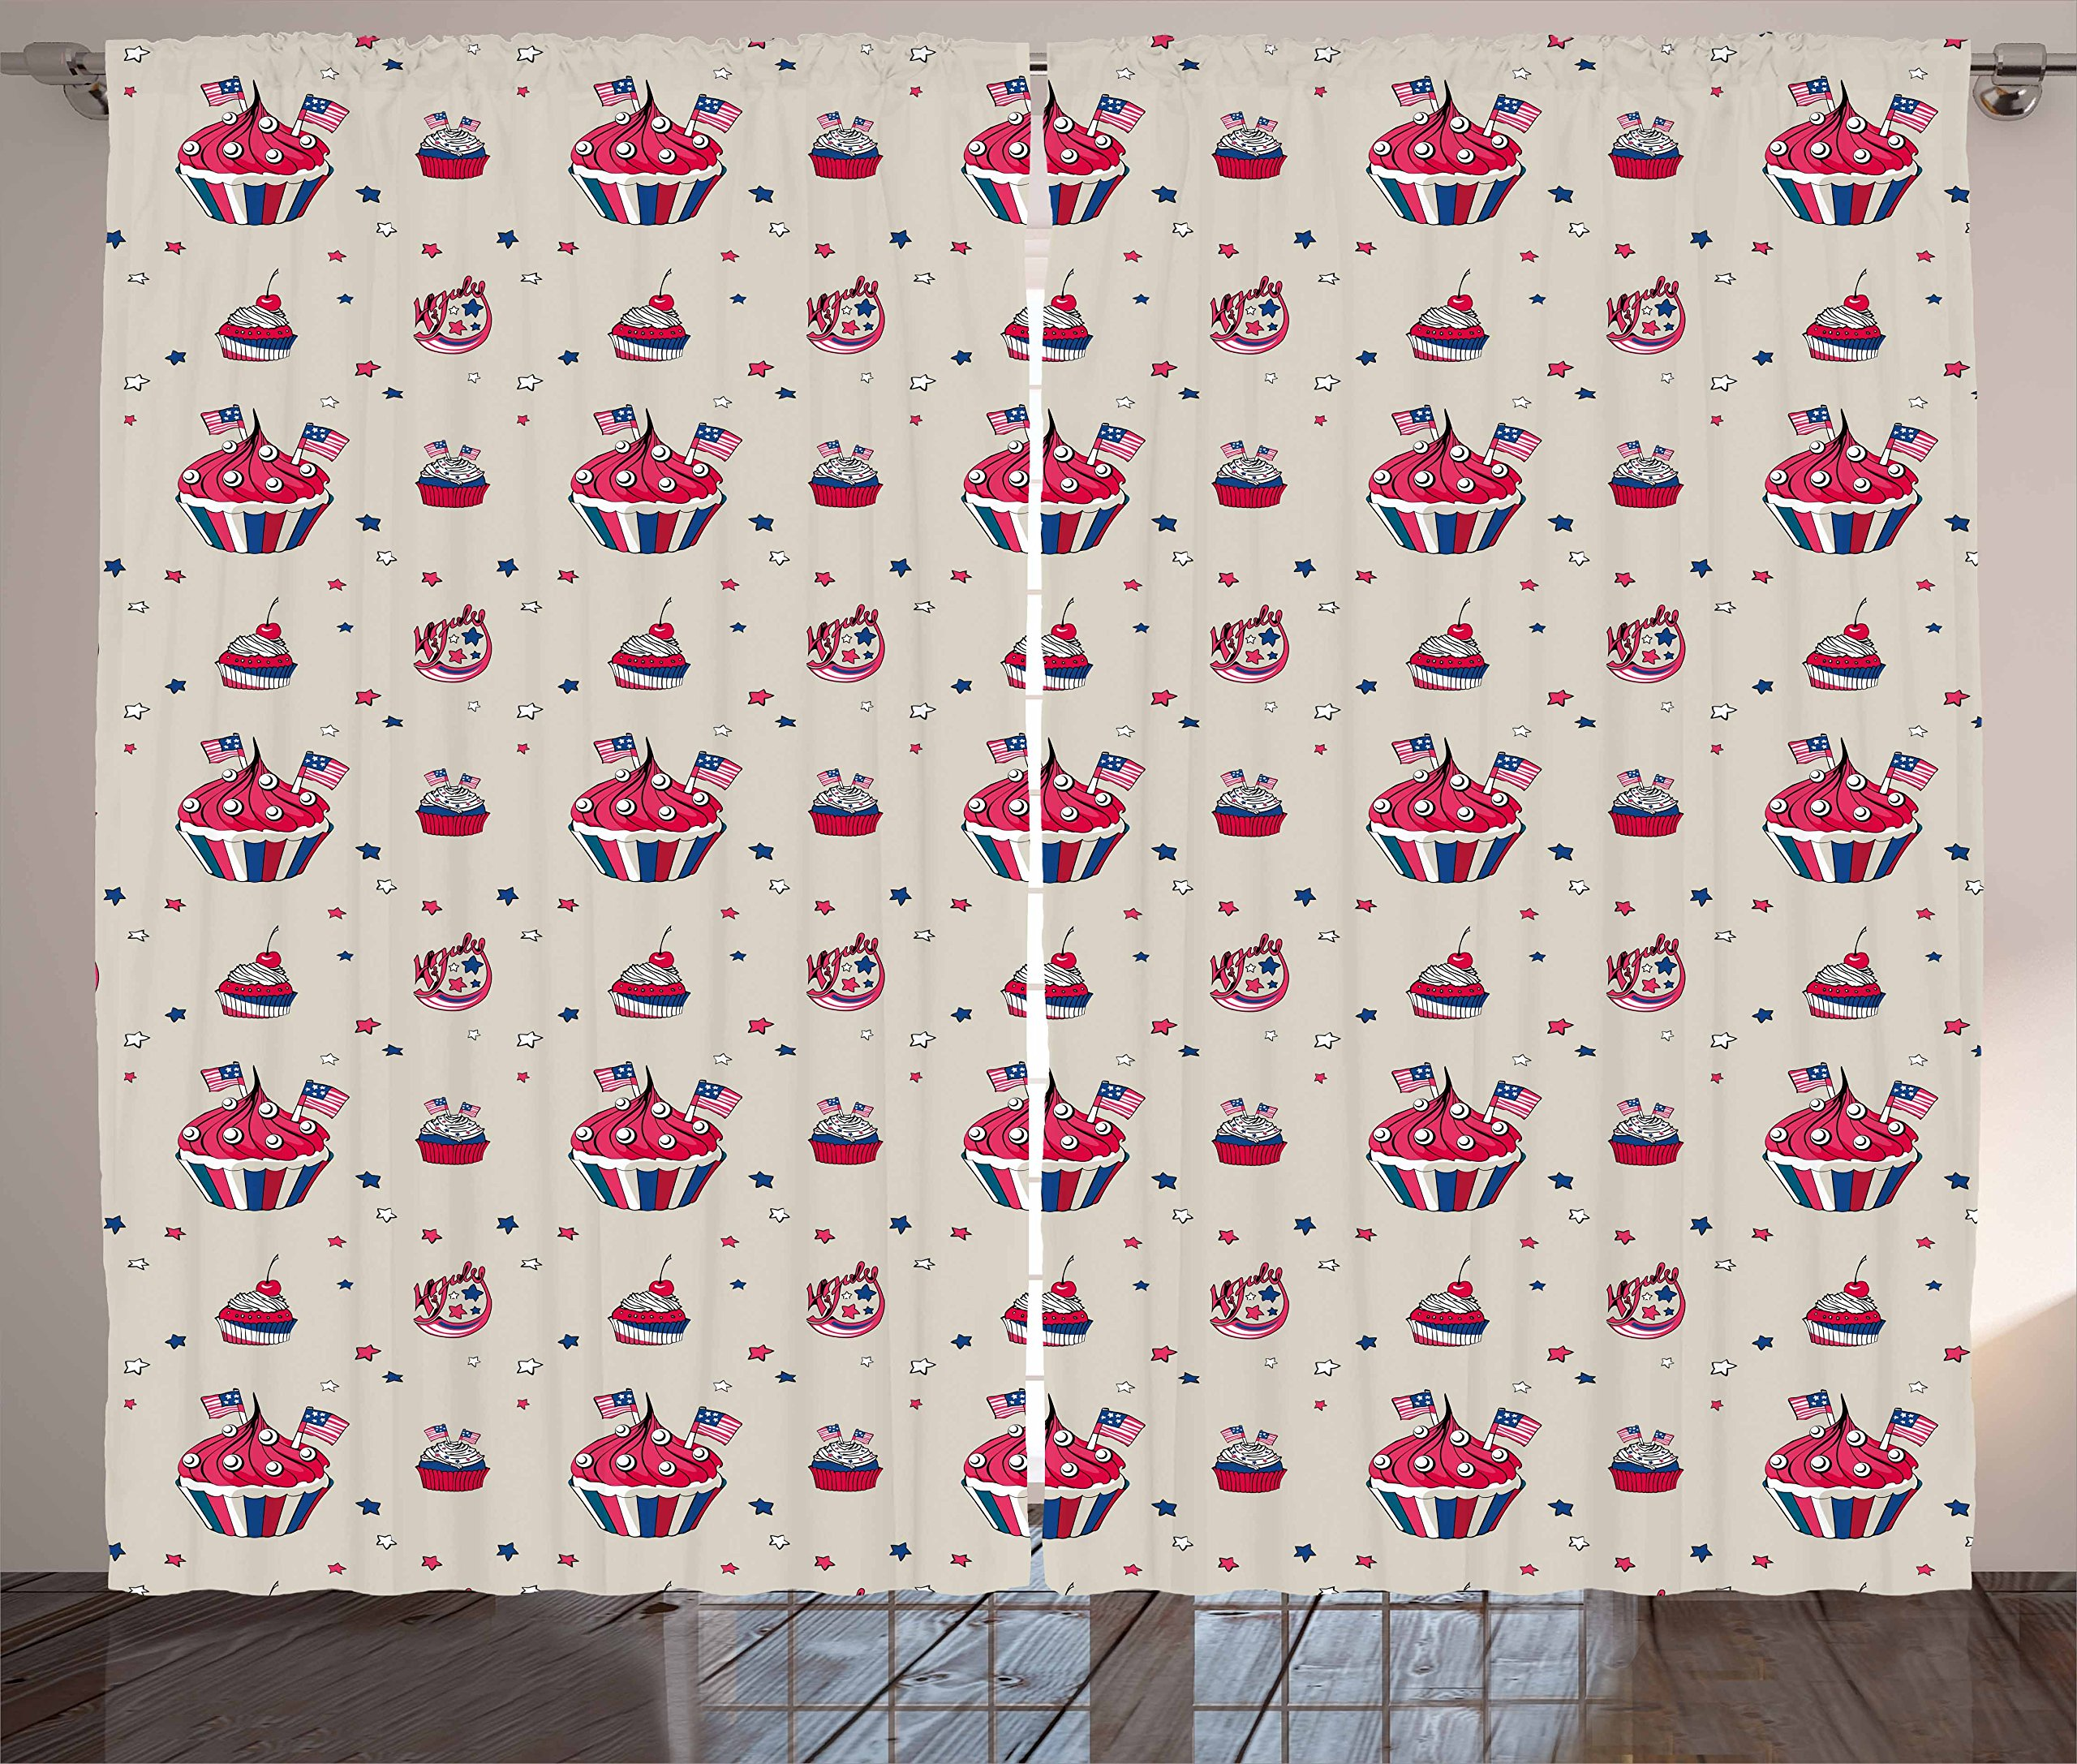 Ambesonne USA Curtains, Cupcakes with National Flags Cafe Yummy Homeland July Fourth Caricature, Living Room Bedroom Window Drapes 2 Panel Set, 108'' X 84'', Beige Navy Blue Red by Ambesonne